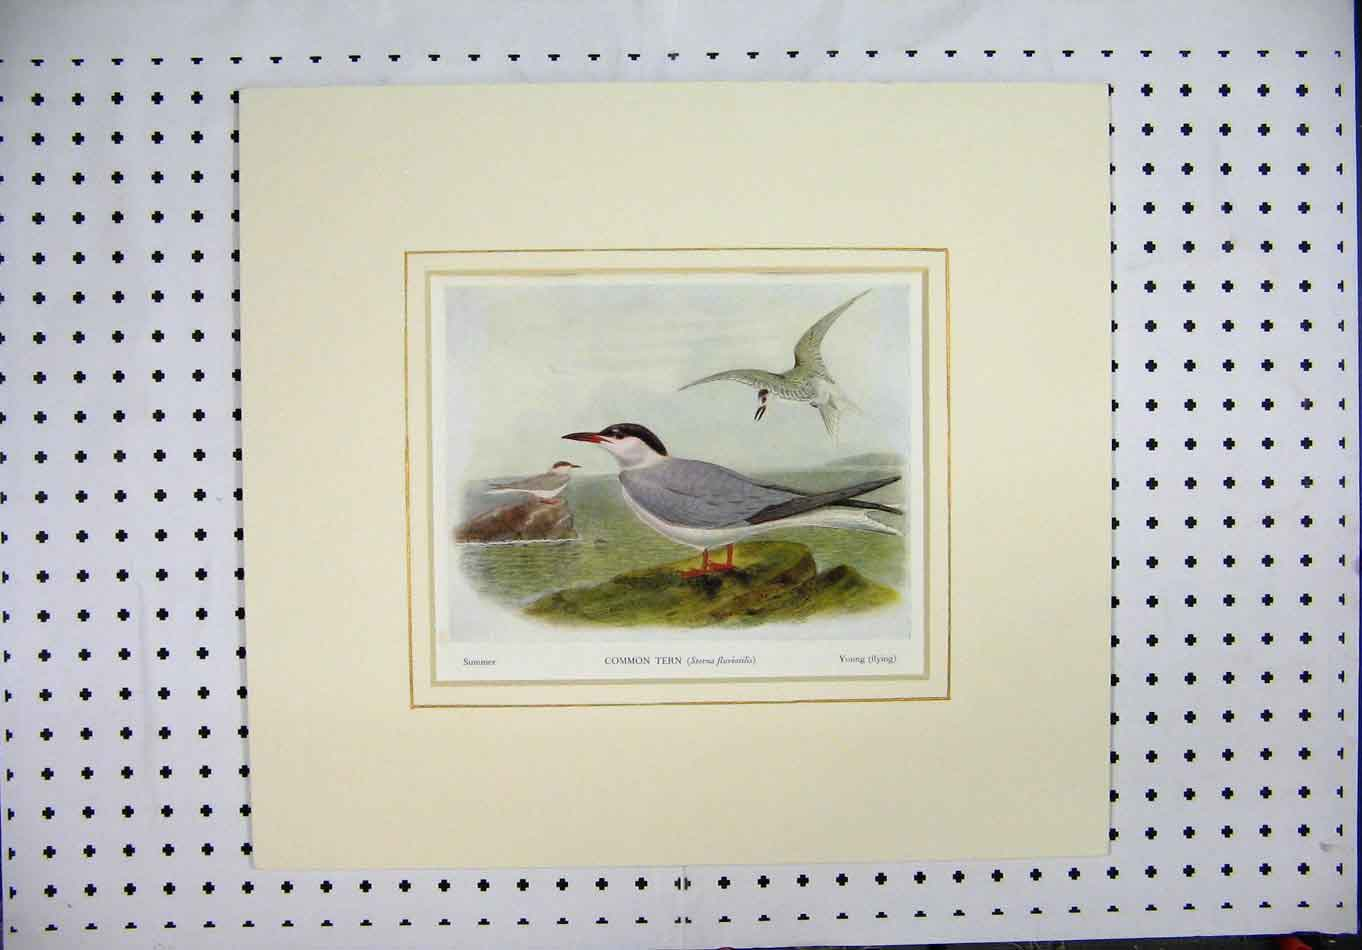 Print Colour Common Tern Black-Headed Gull Sea Birds 140A128 Old Original